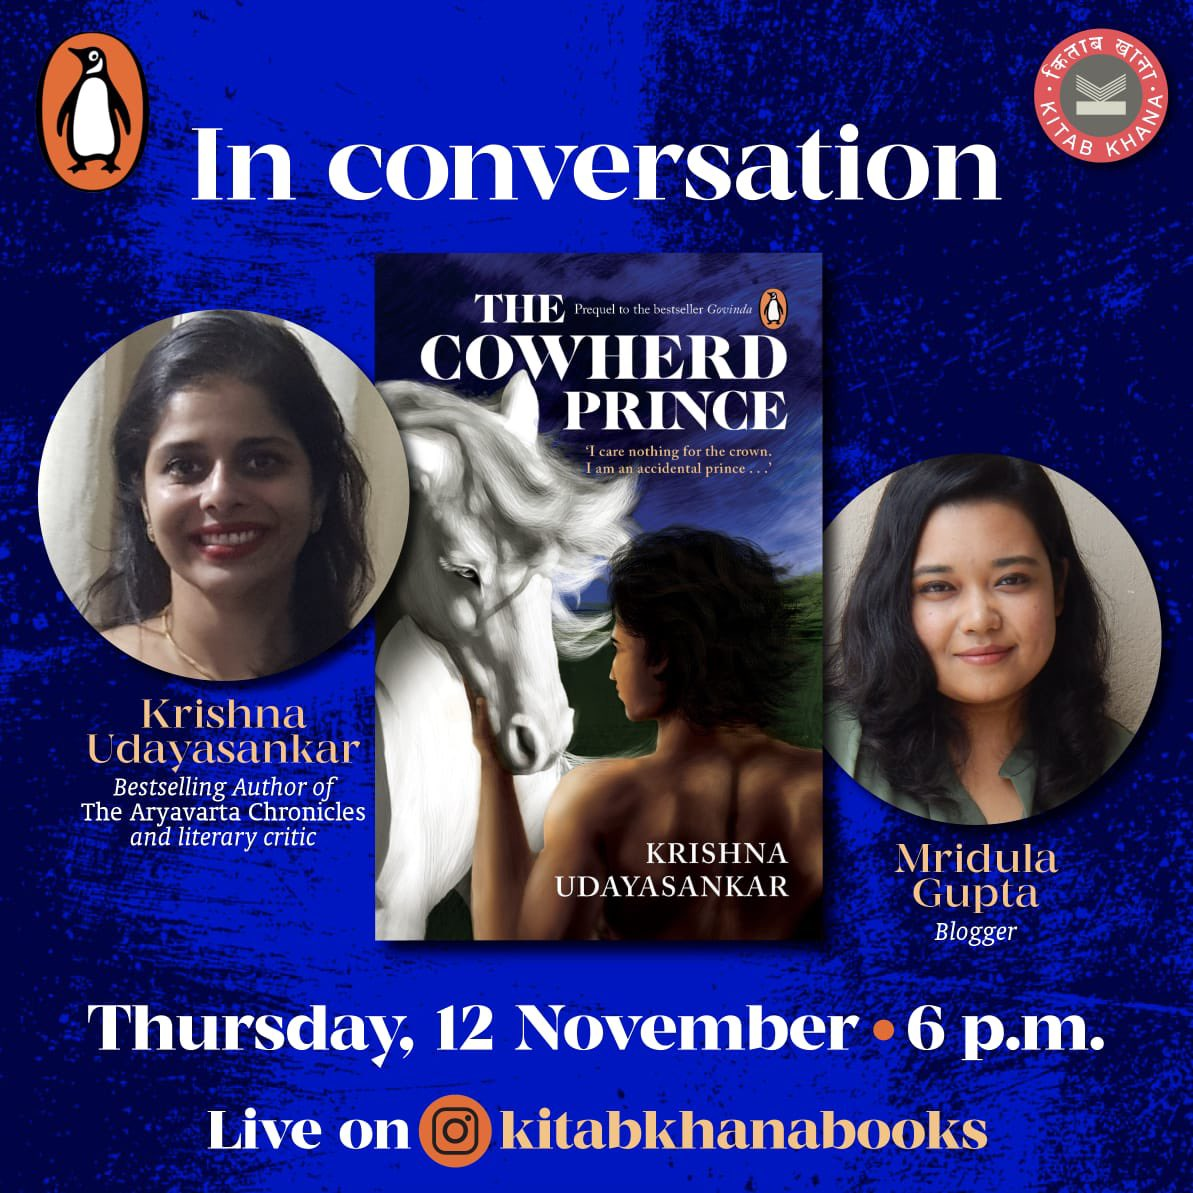 Join us for a LIVE a conversation with @krisudayasankar today at 6pm. @KitabKhanaBooks #TheCowherdPrince